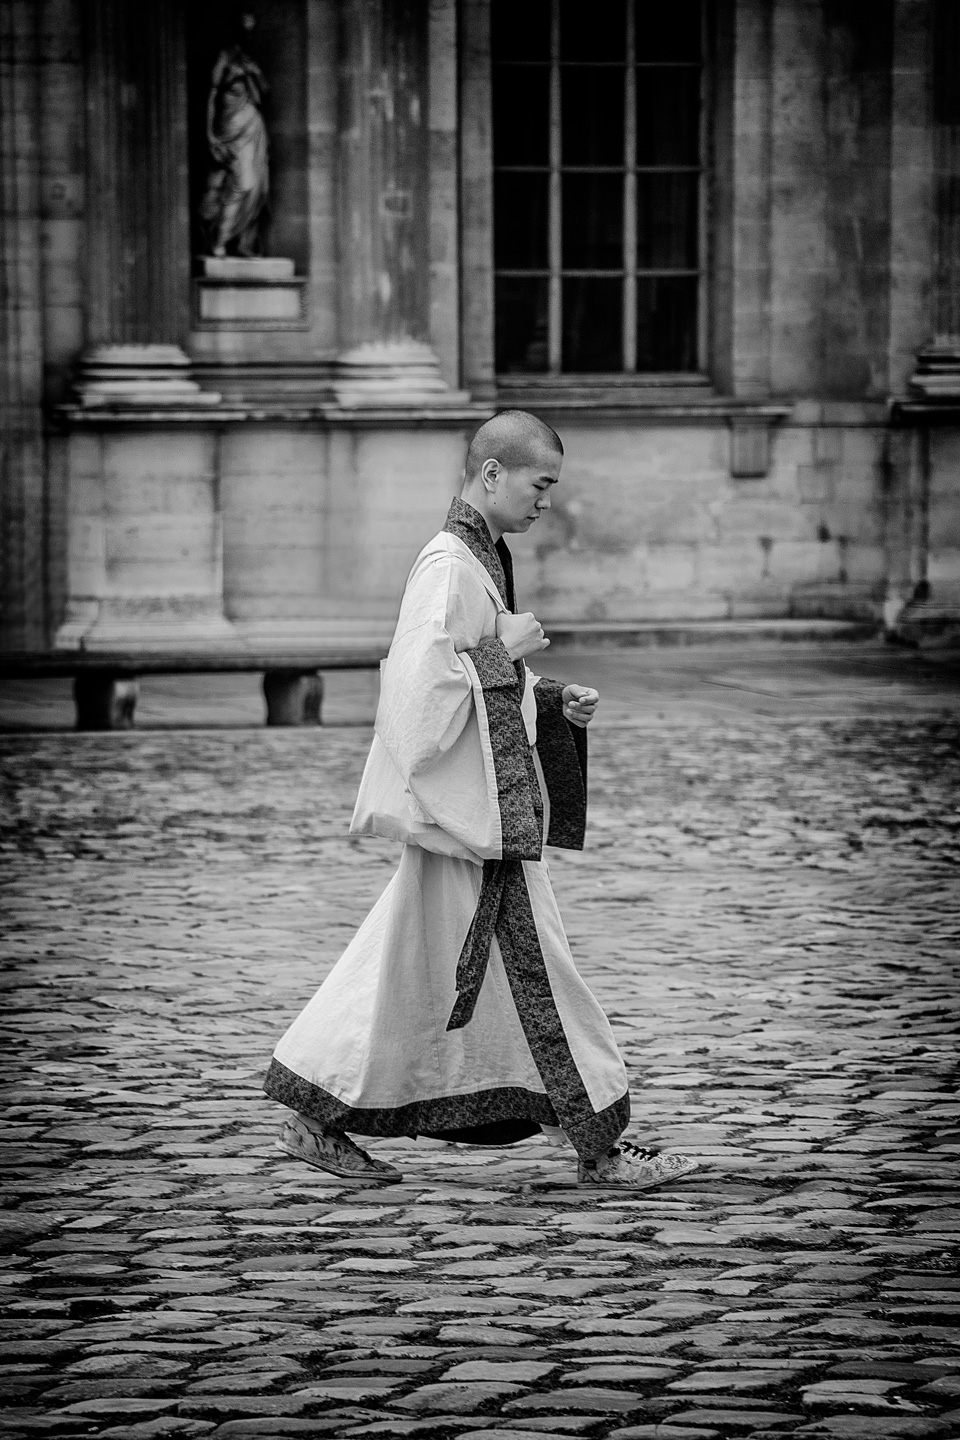 French Photographer Street Photography Buddhist monk